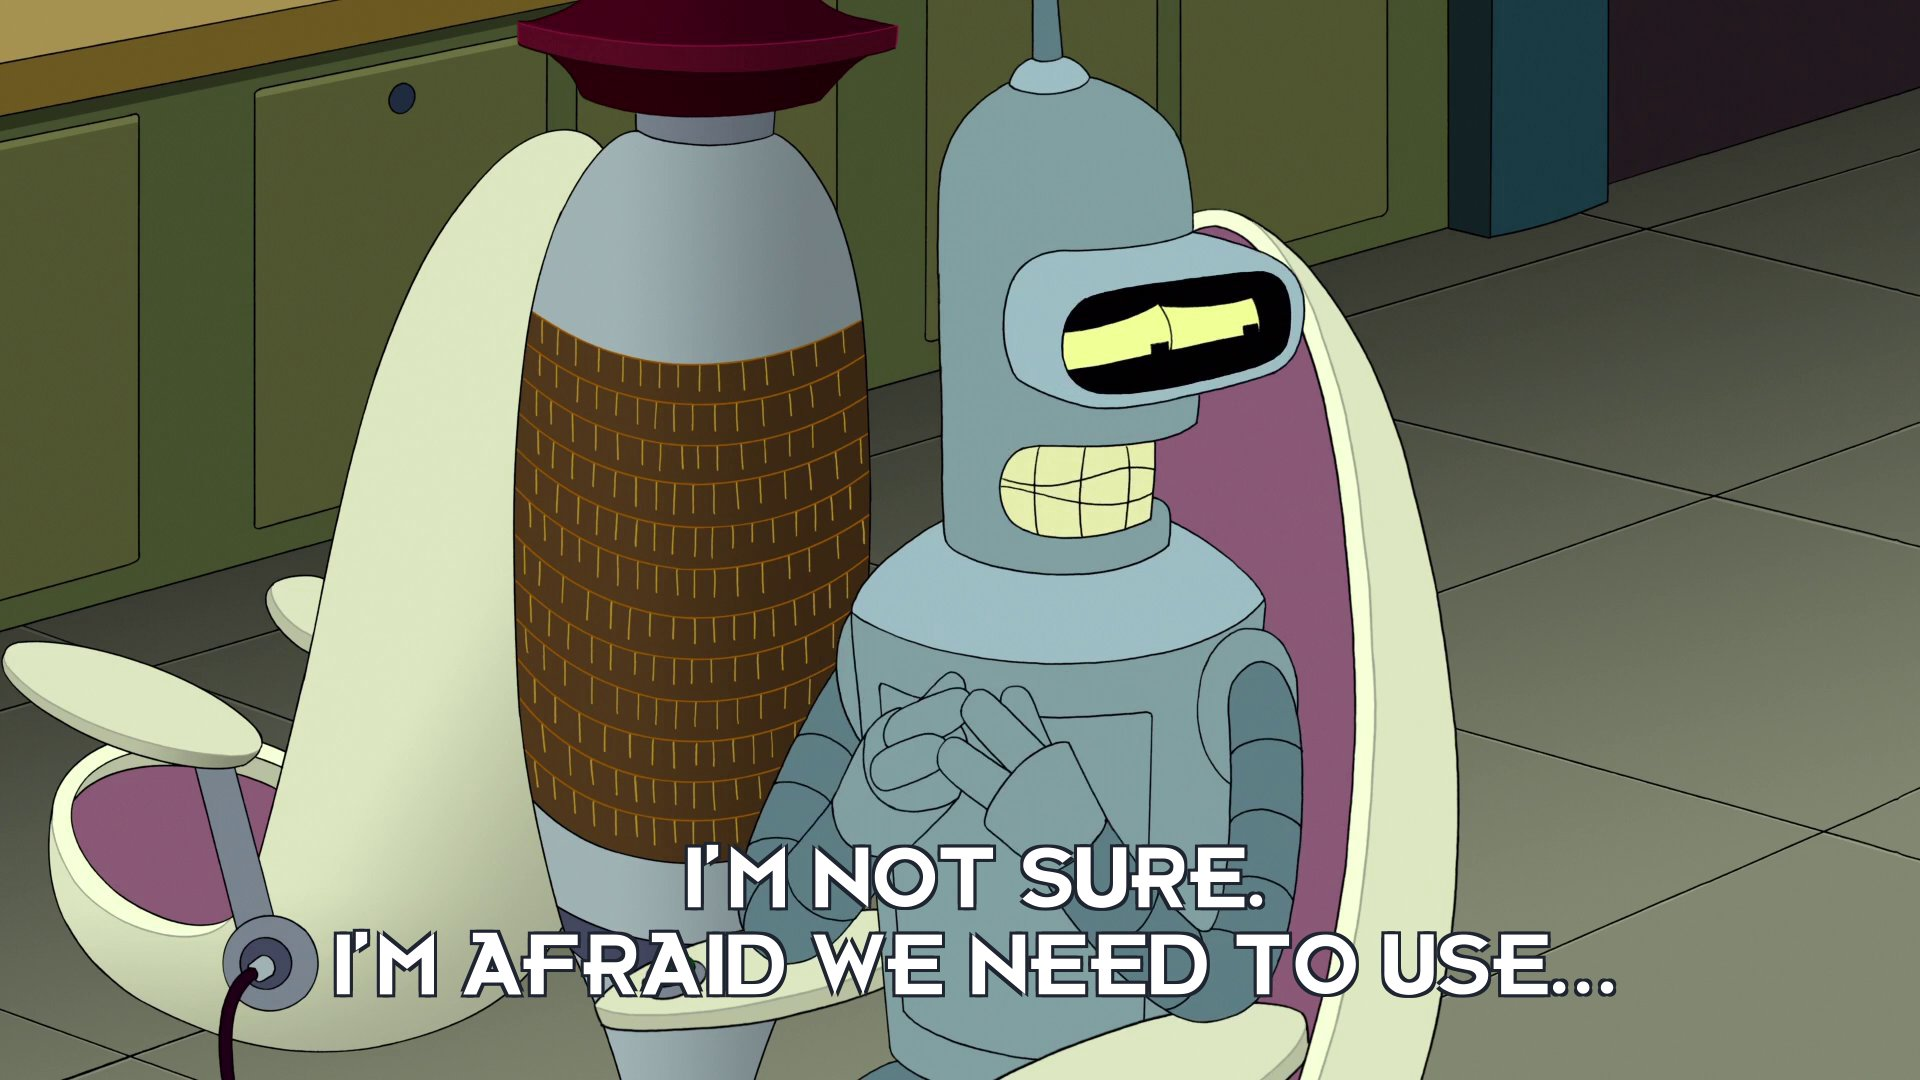 Prof Hubert J Farnsworth [in Bender Bending Rodriguez's body]: I'm not sure. I'm afraid we need to use...